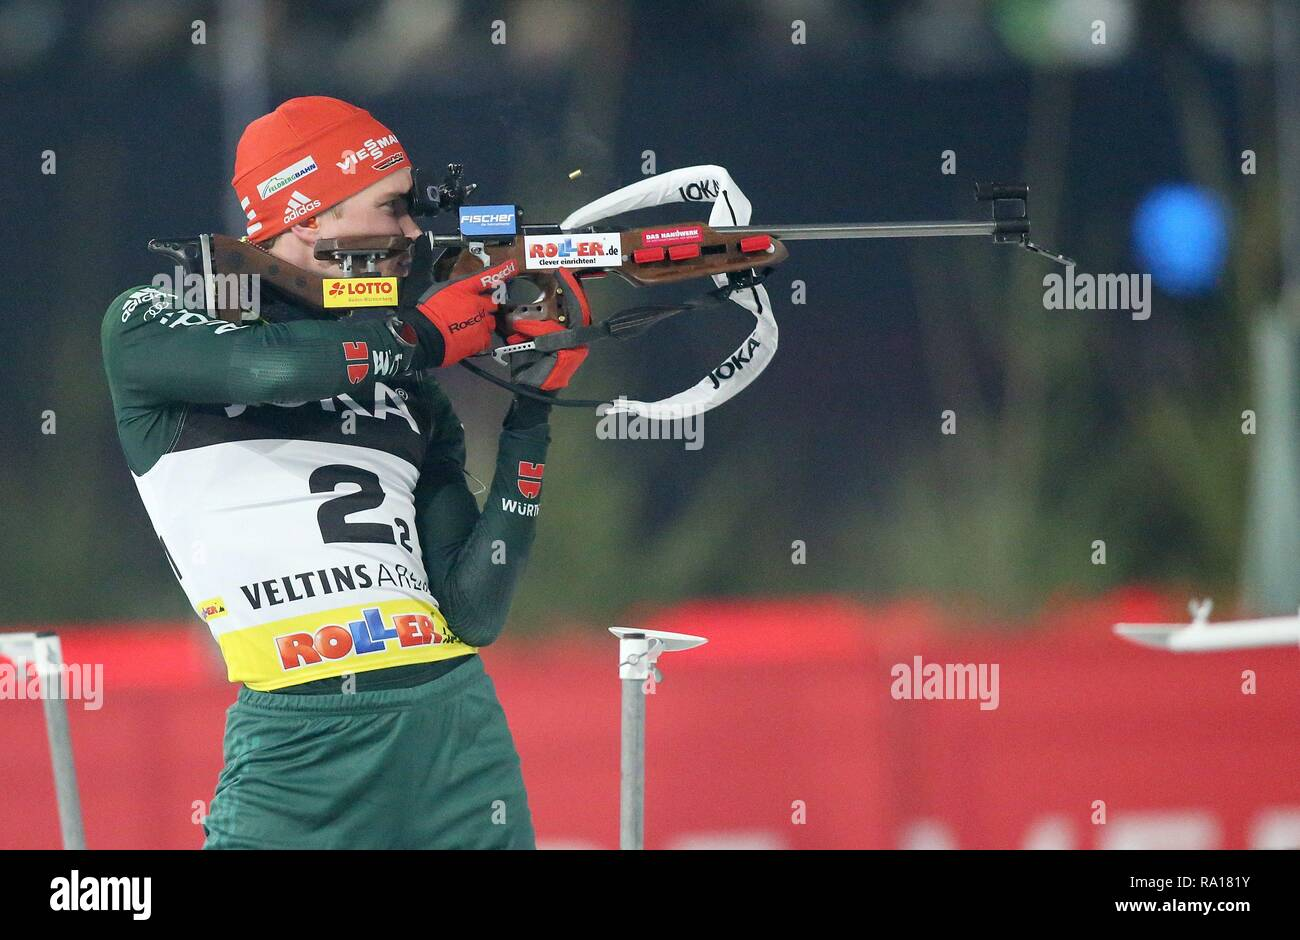 firo: 29.12.2018 Biathlon, JOKA Biathlon on Schalke, Benedikt Doll, Germany, | usage worldwide - Stock Image